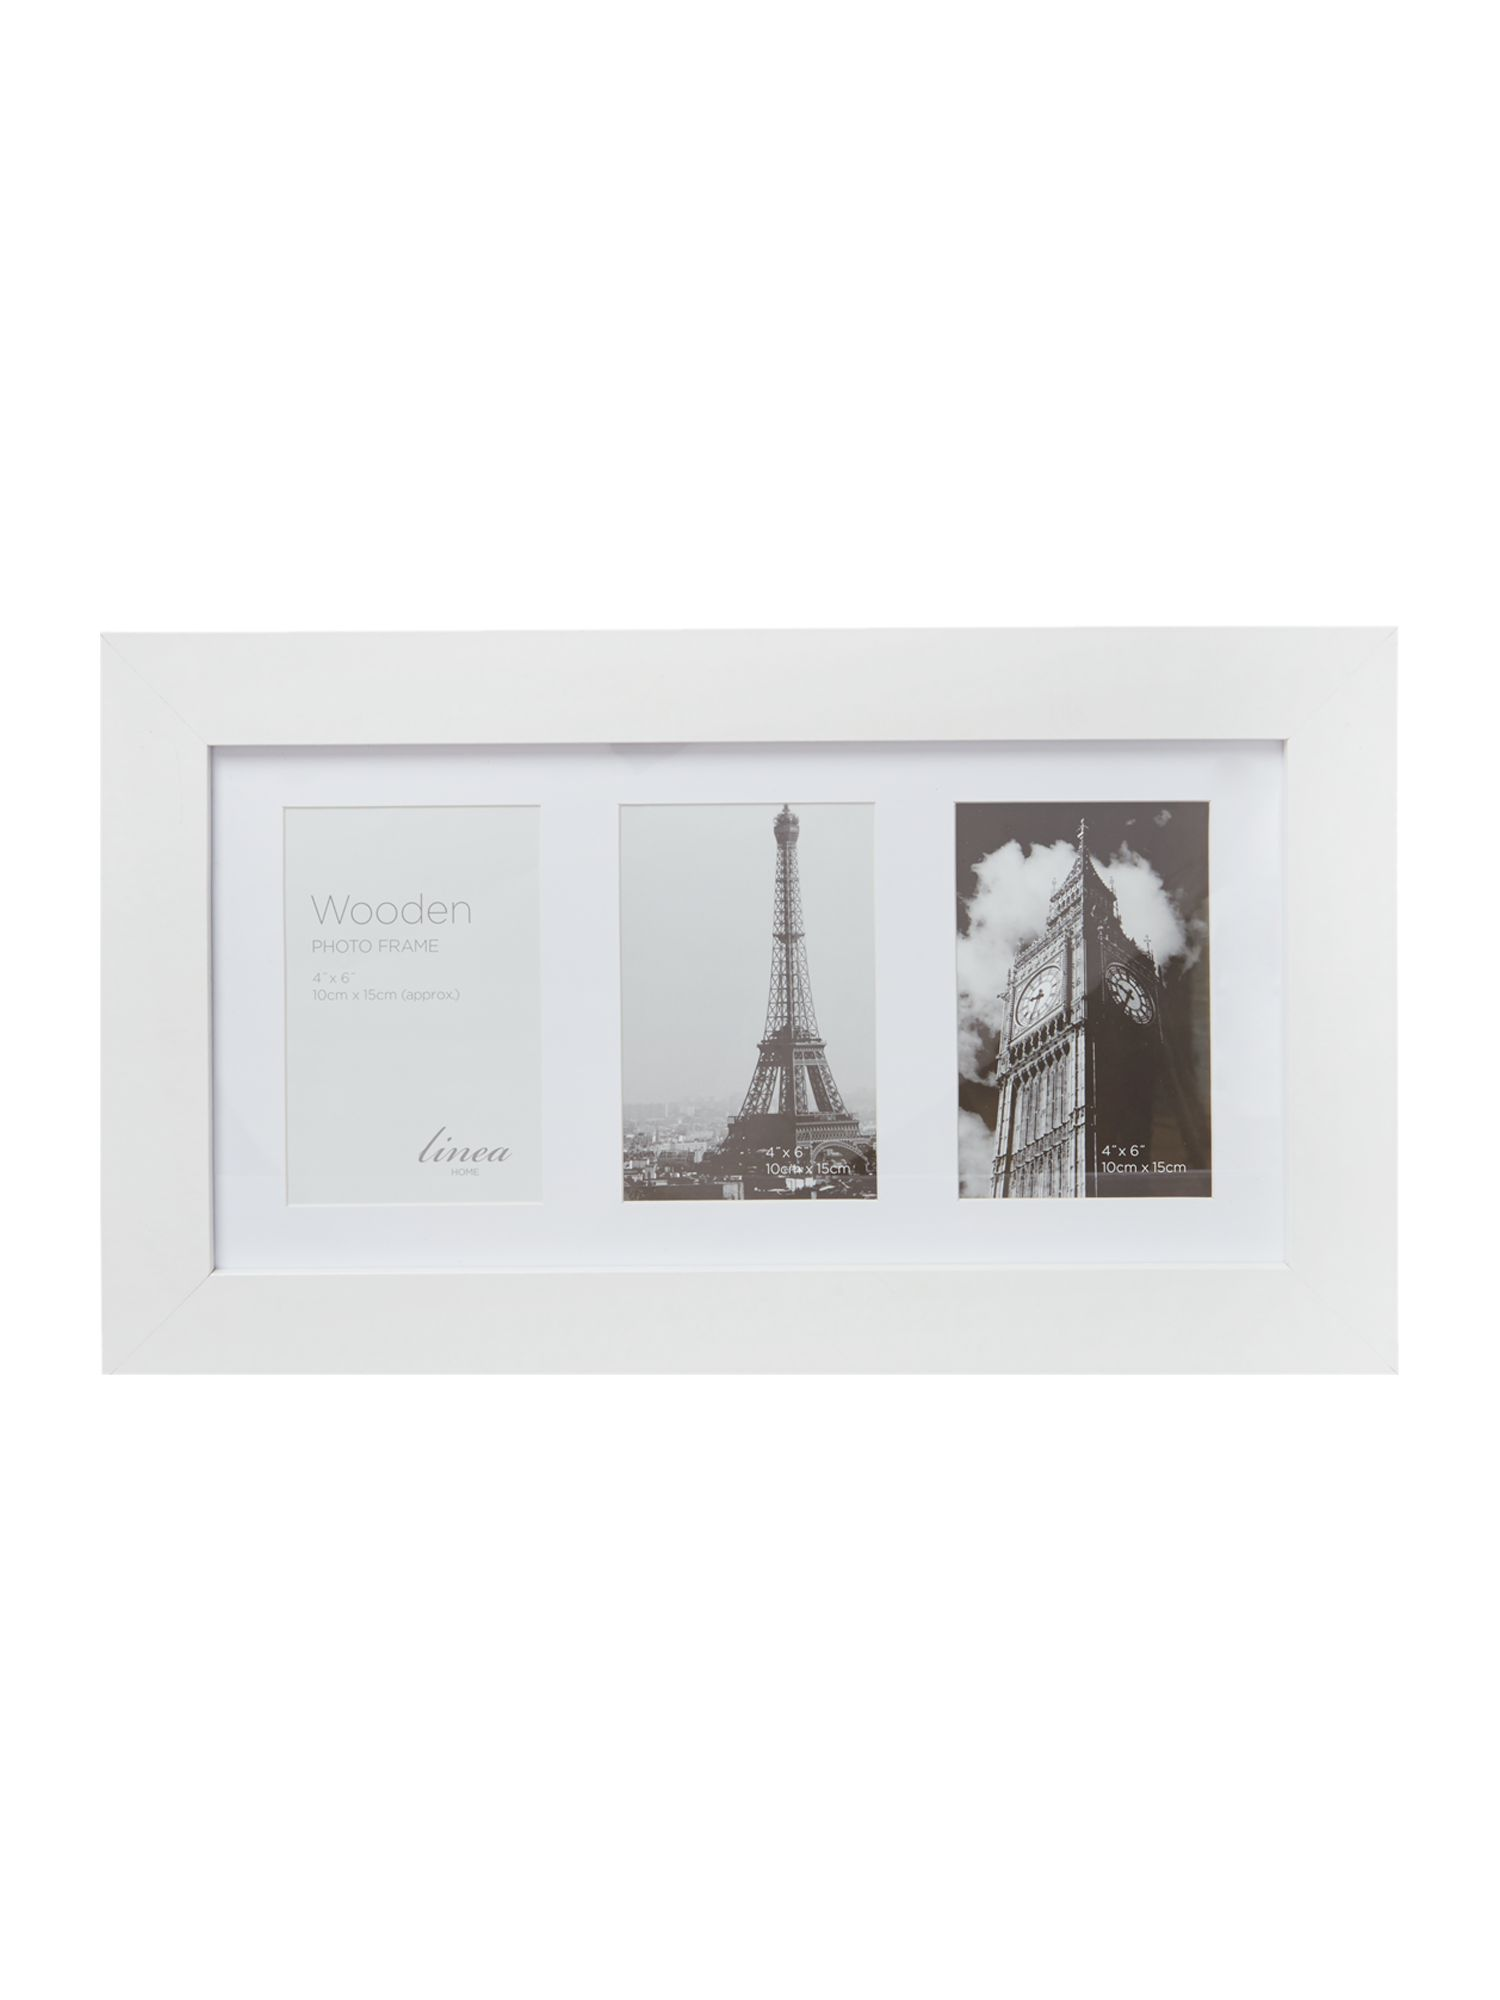 White wood 3 aperture photo frame